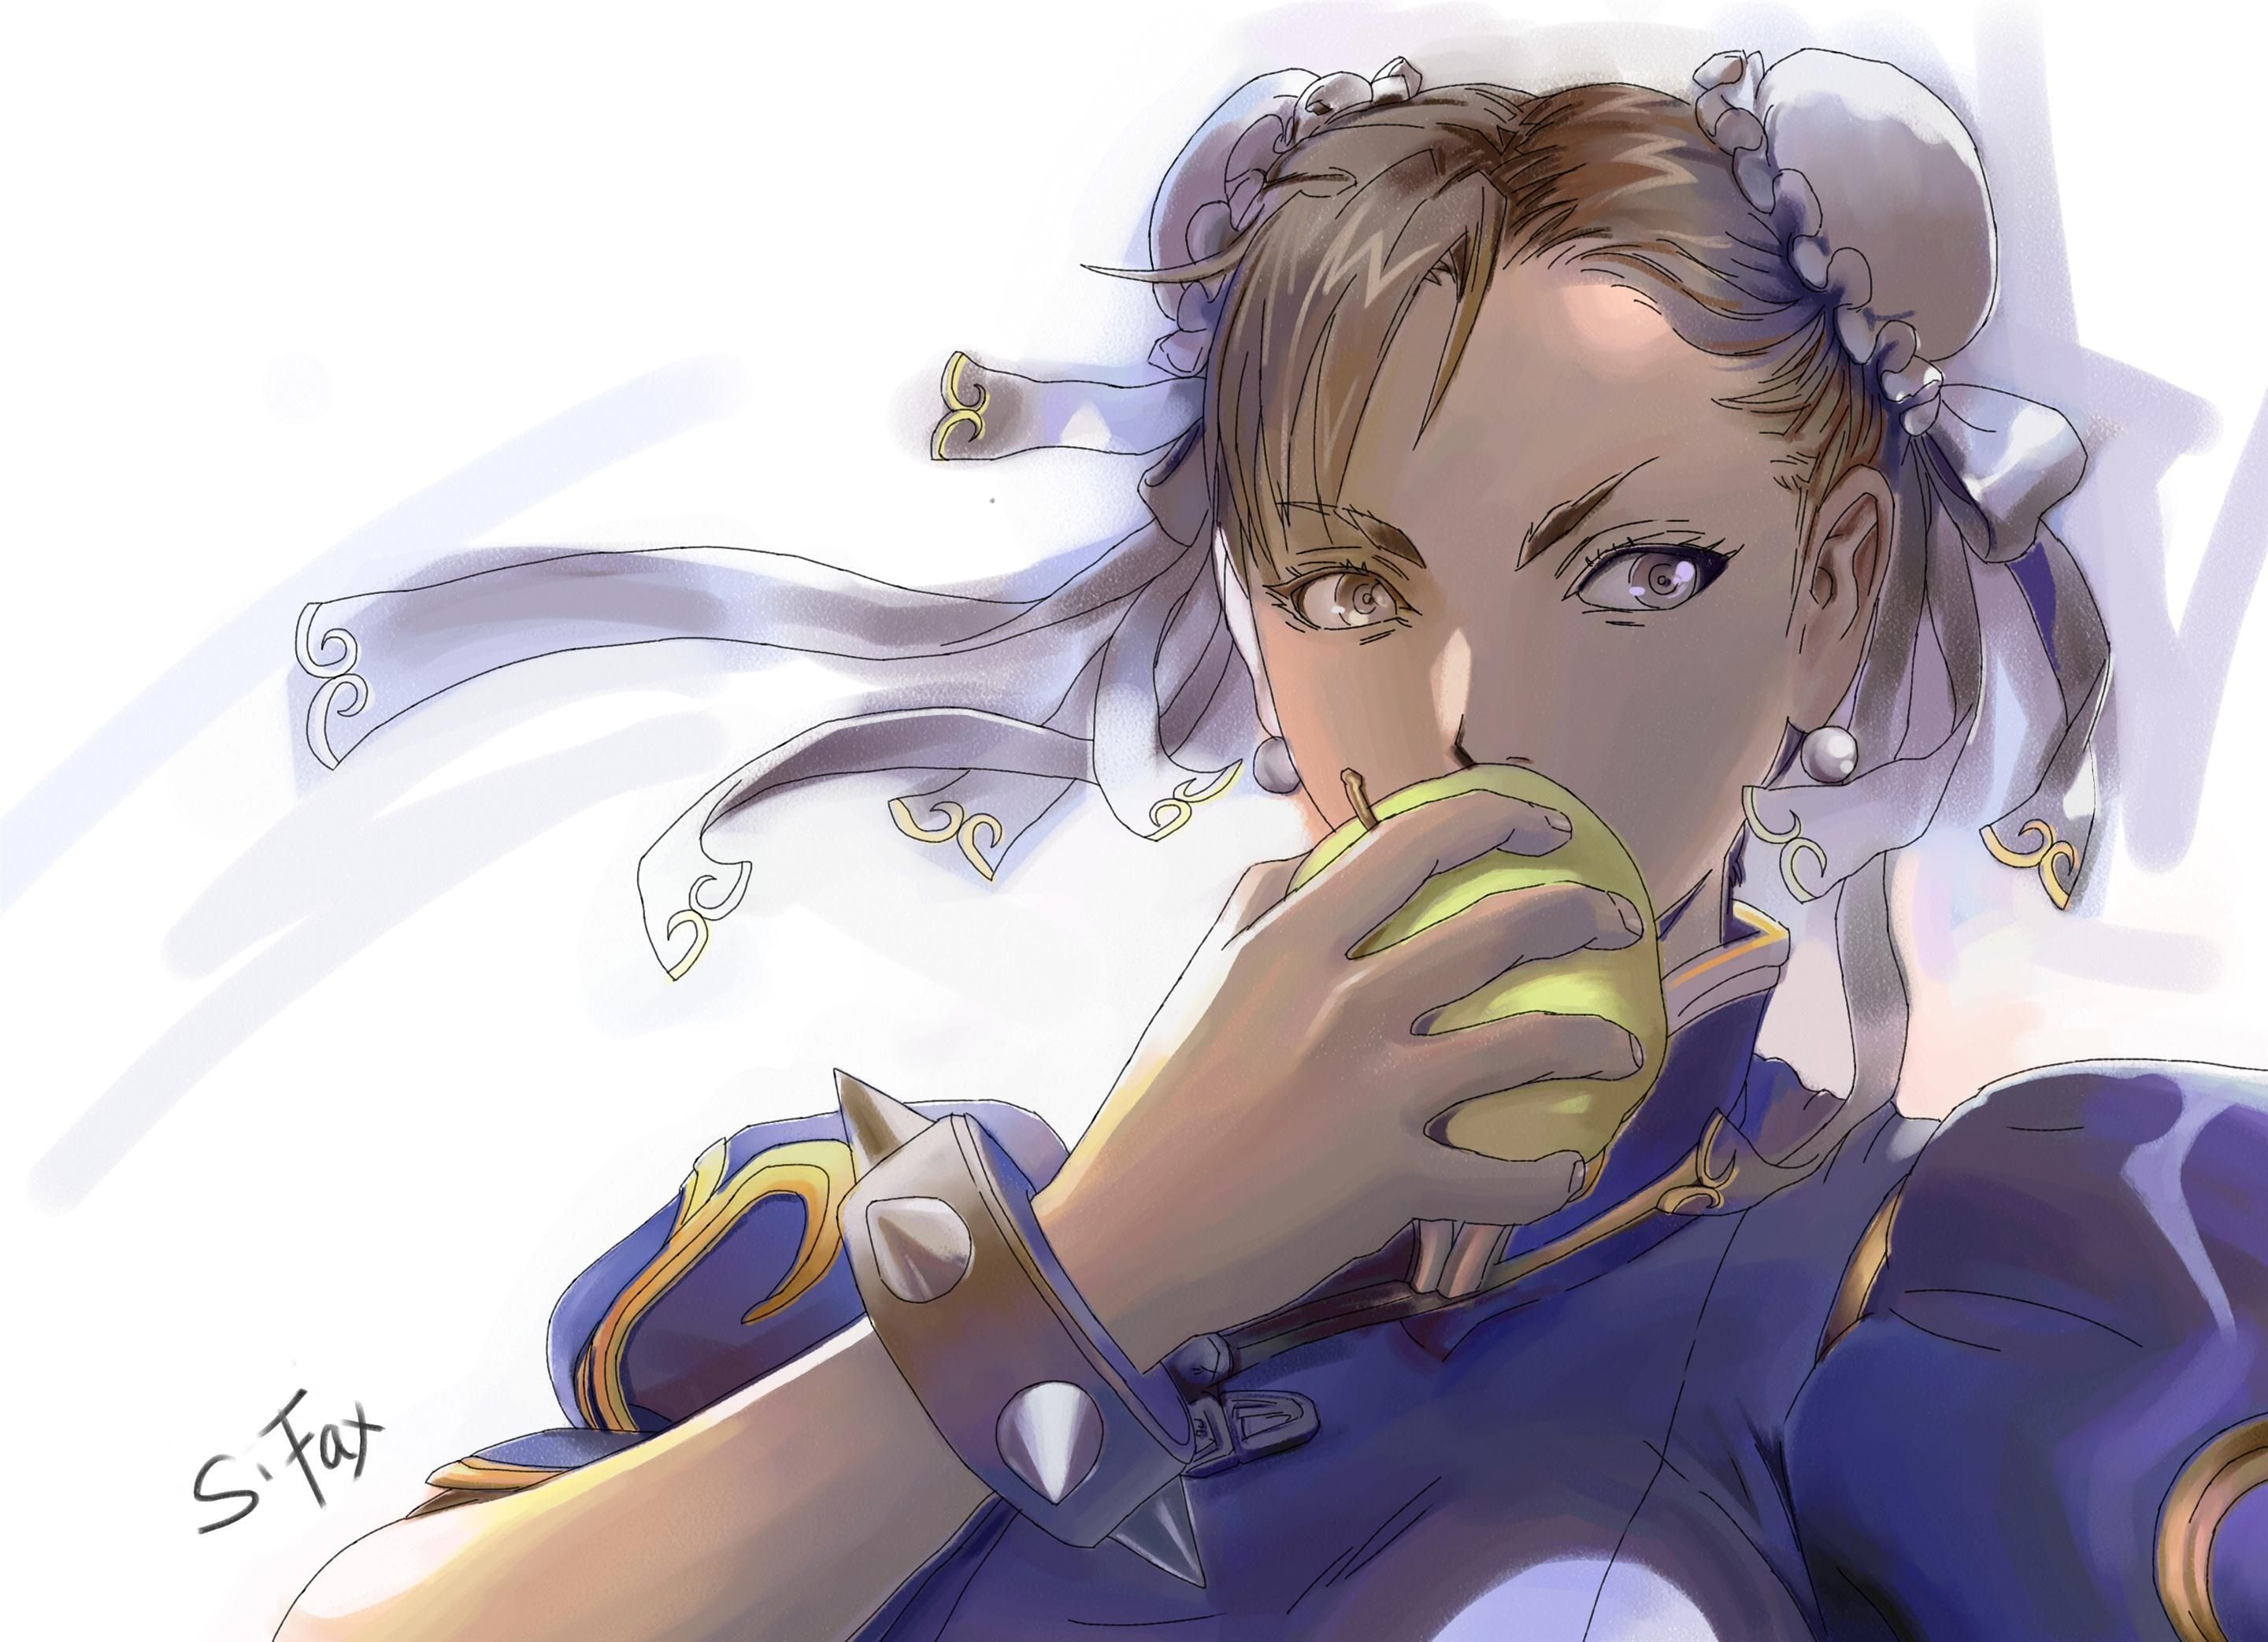 Street Fighter Anime Girl Wallpapers Top Free Street Fighter